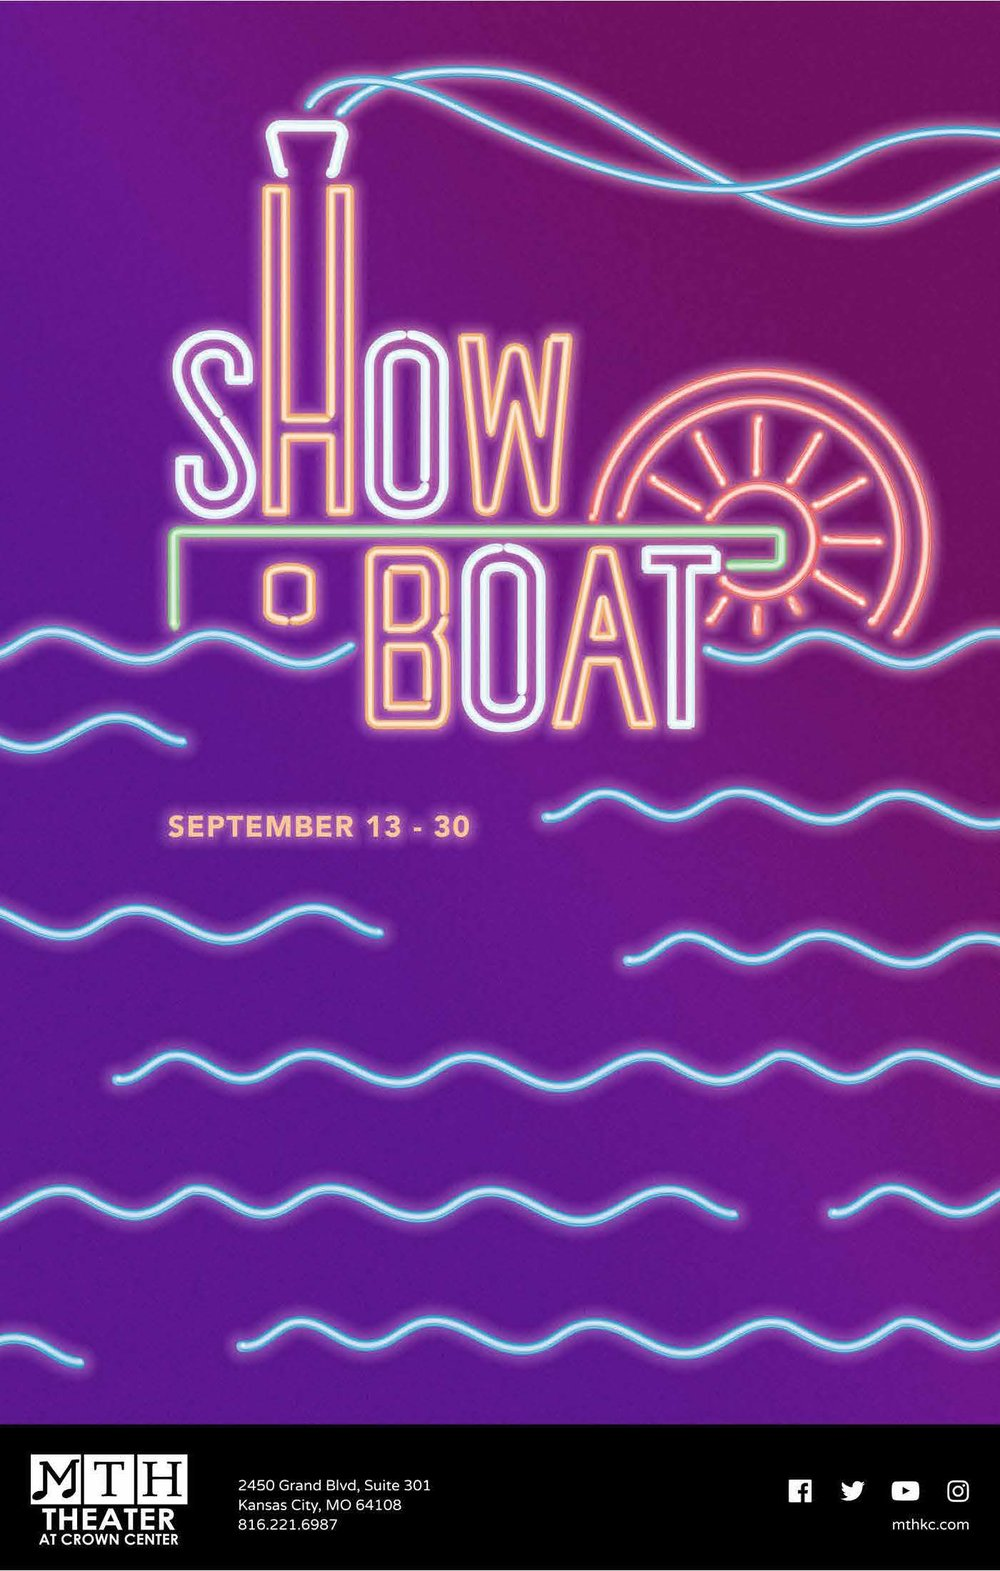 ShowBoat_Concepts_Page_1.jpg